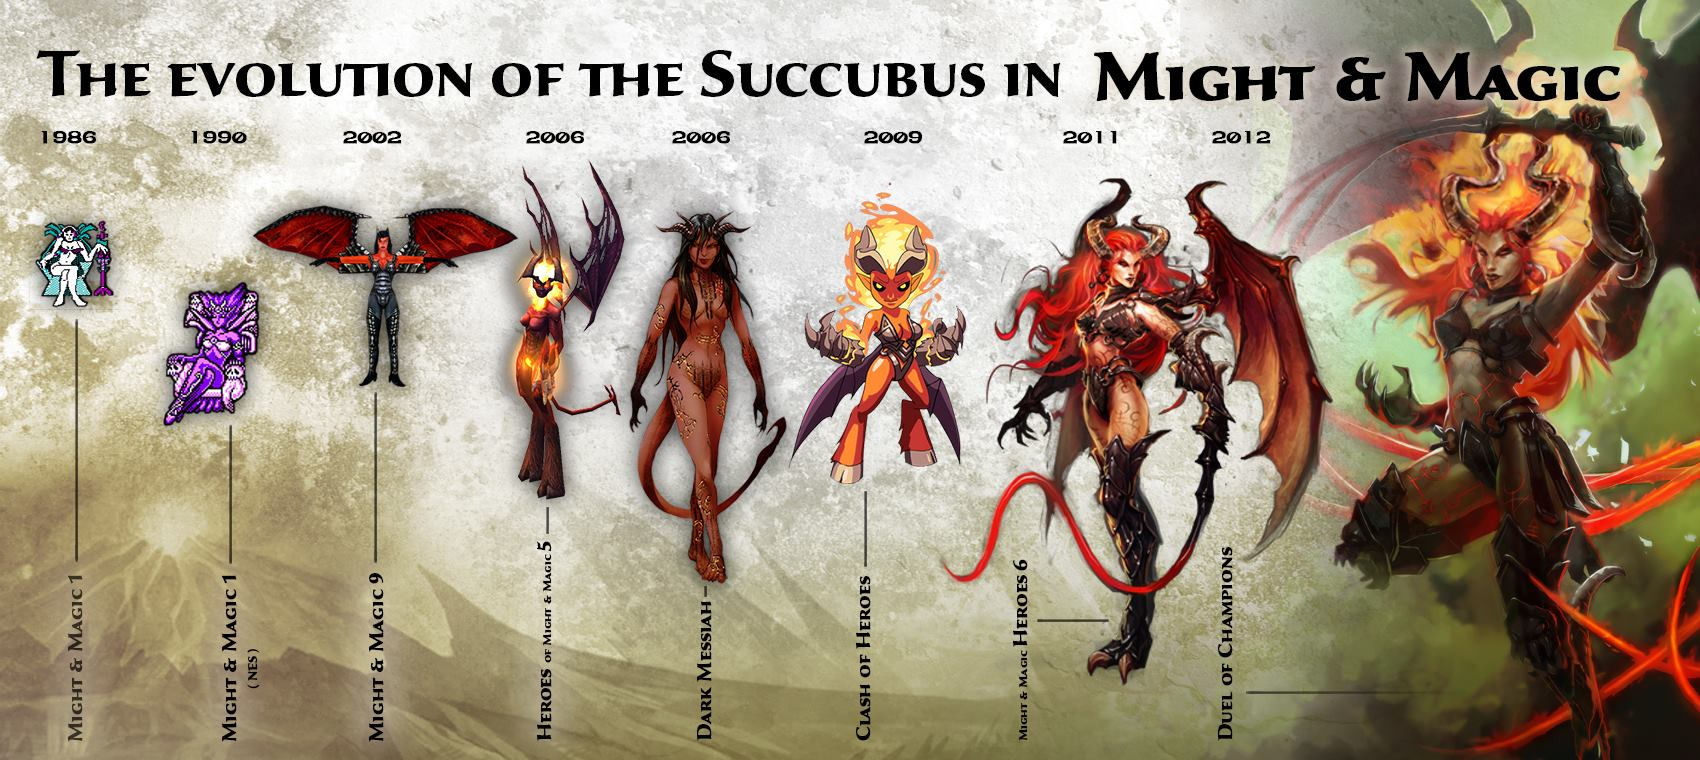 The evolution of the Succubus in Might and Magic